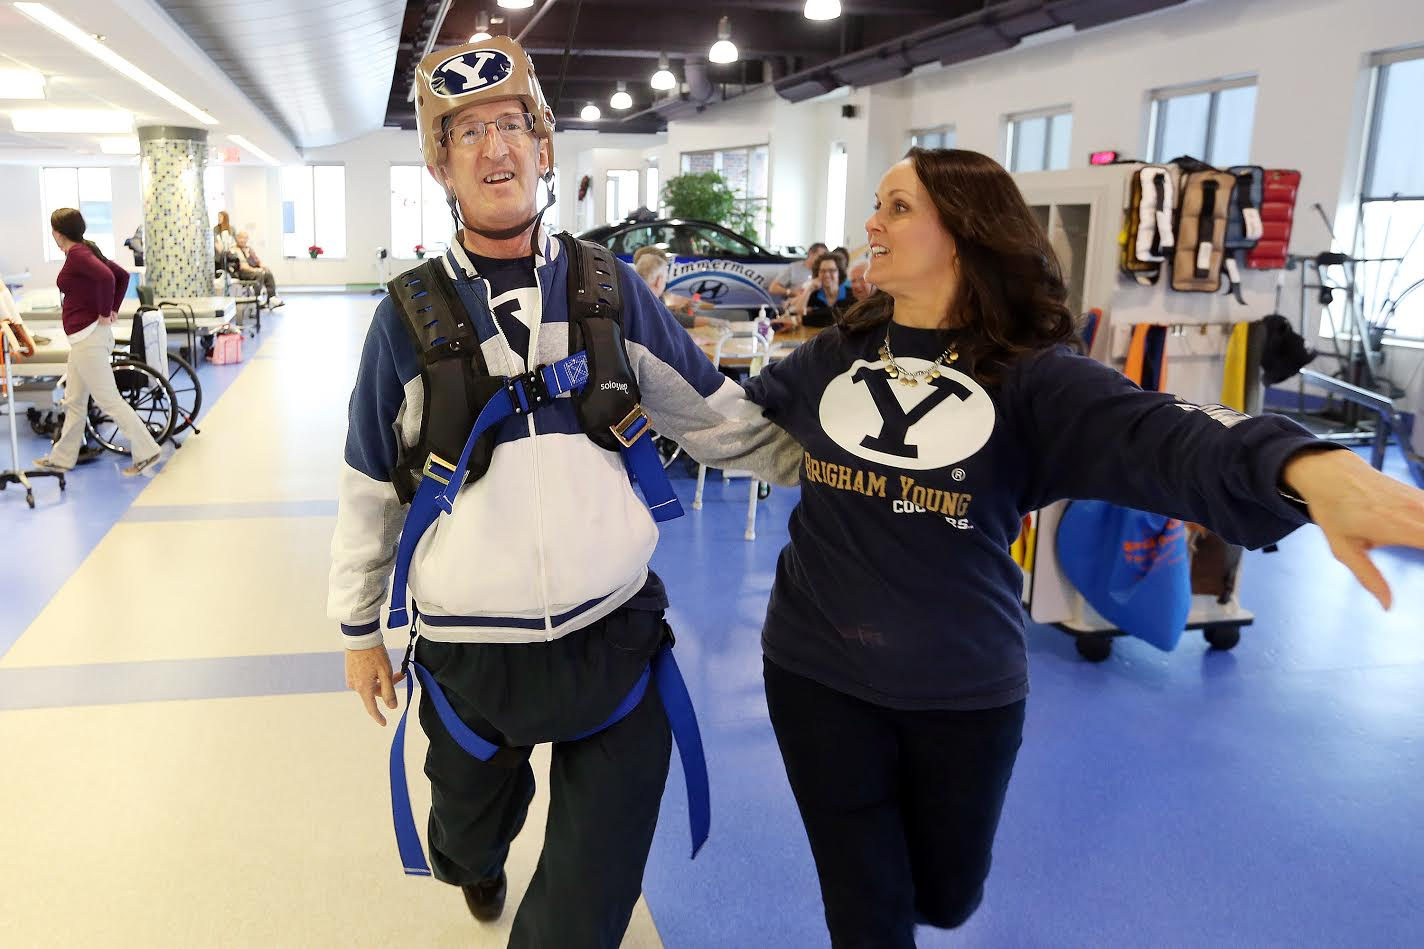 Doug and Jill Beardsley dance together using a harness and track system during physical therapy in UnityPoint Health-St. LukeÕs HospitalÕs Physical Medicine and Rehabilitation gym in Cedar Rapids on Thursday, Dec. 15, 2016. Doug has been in rehabilitation following a brain infection that required surgery, and the harness system has enabled him to dance with his wife as part of his physical therapy. (Liz Martin/The Gazette)